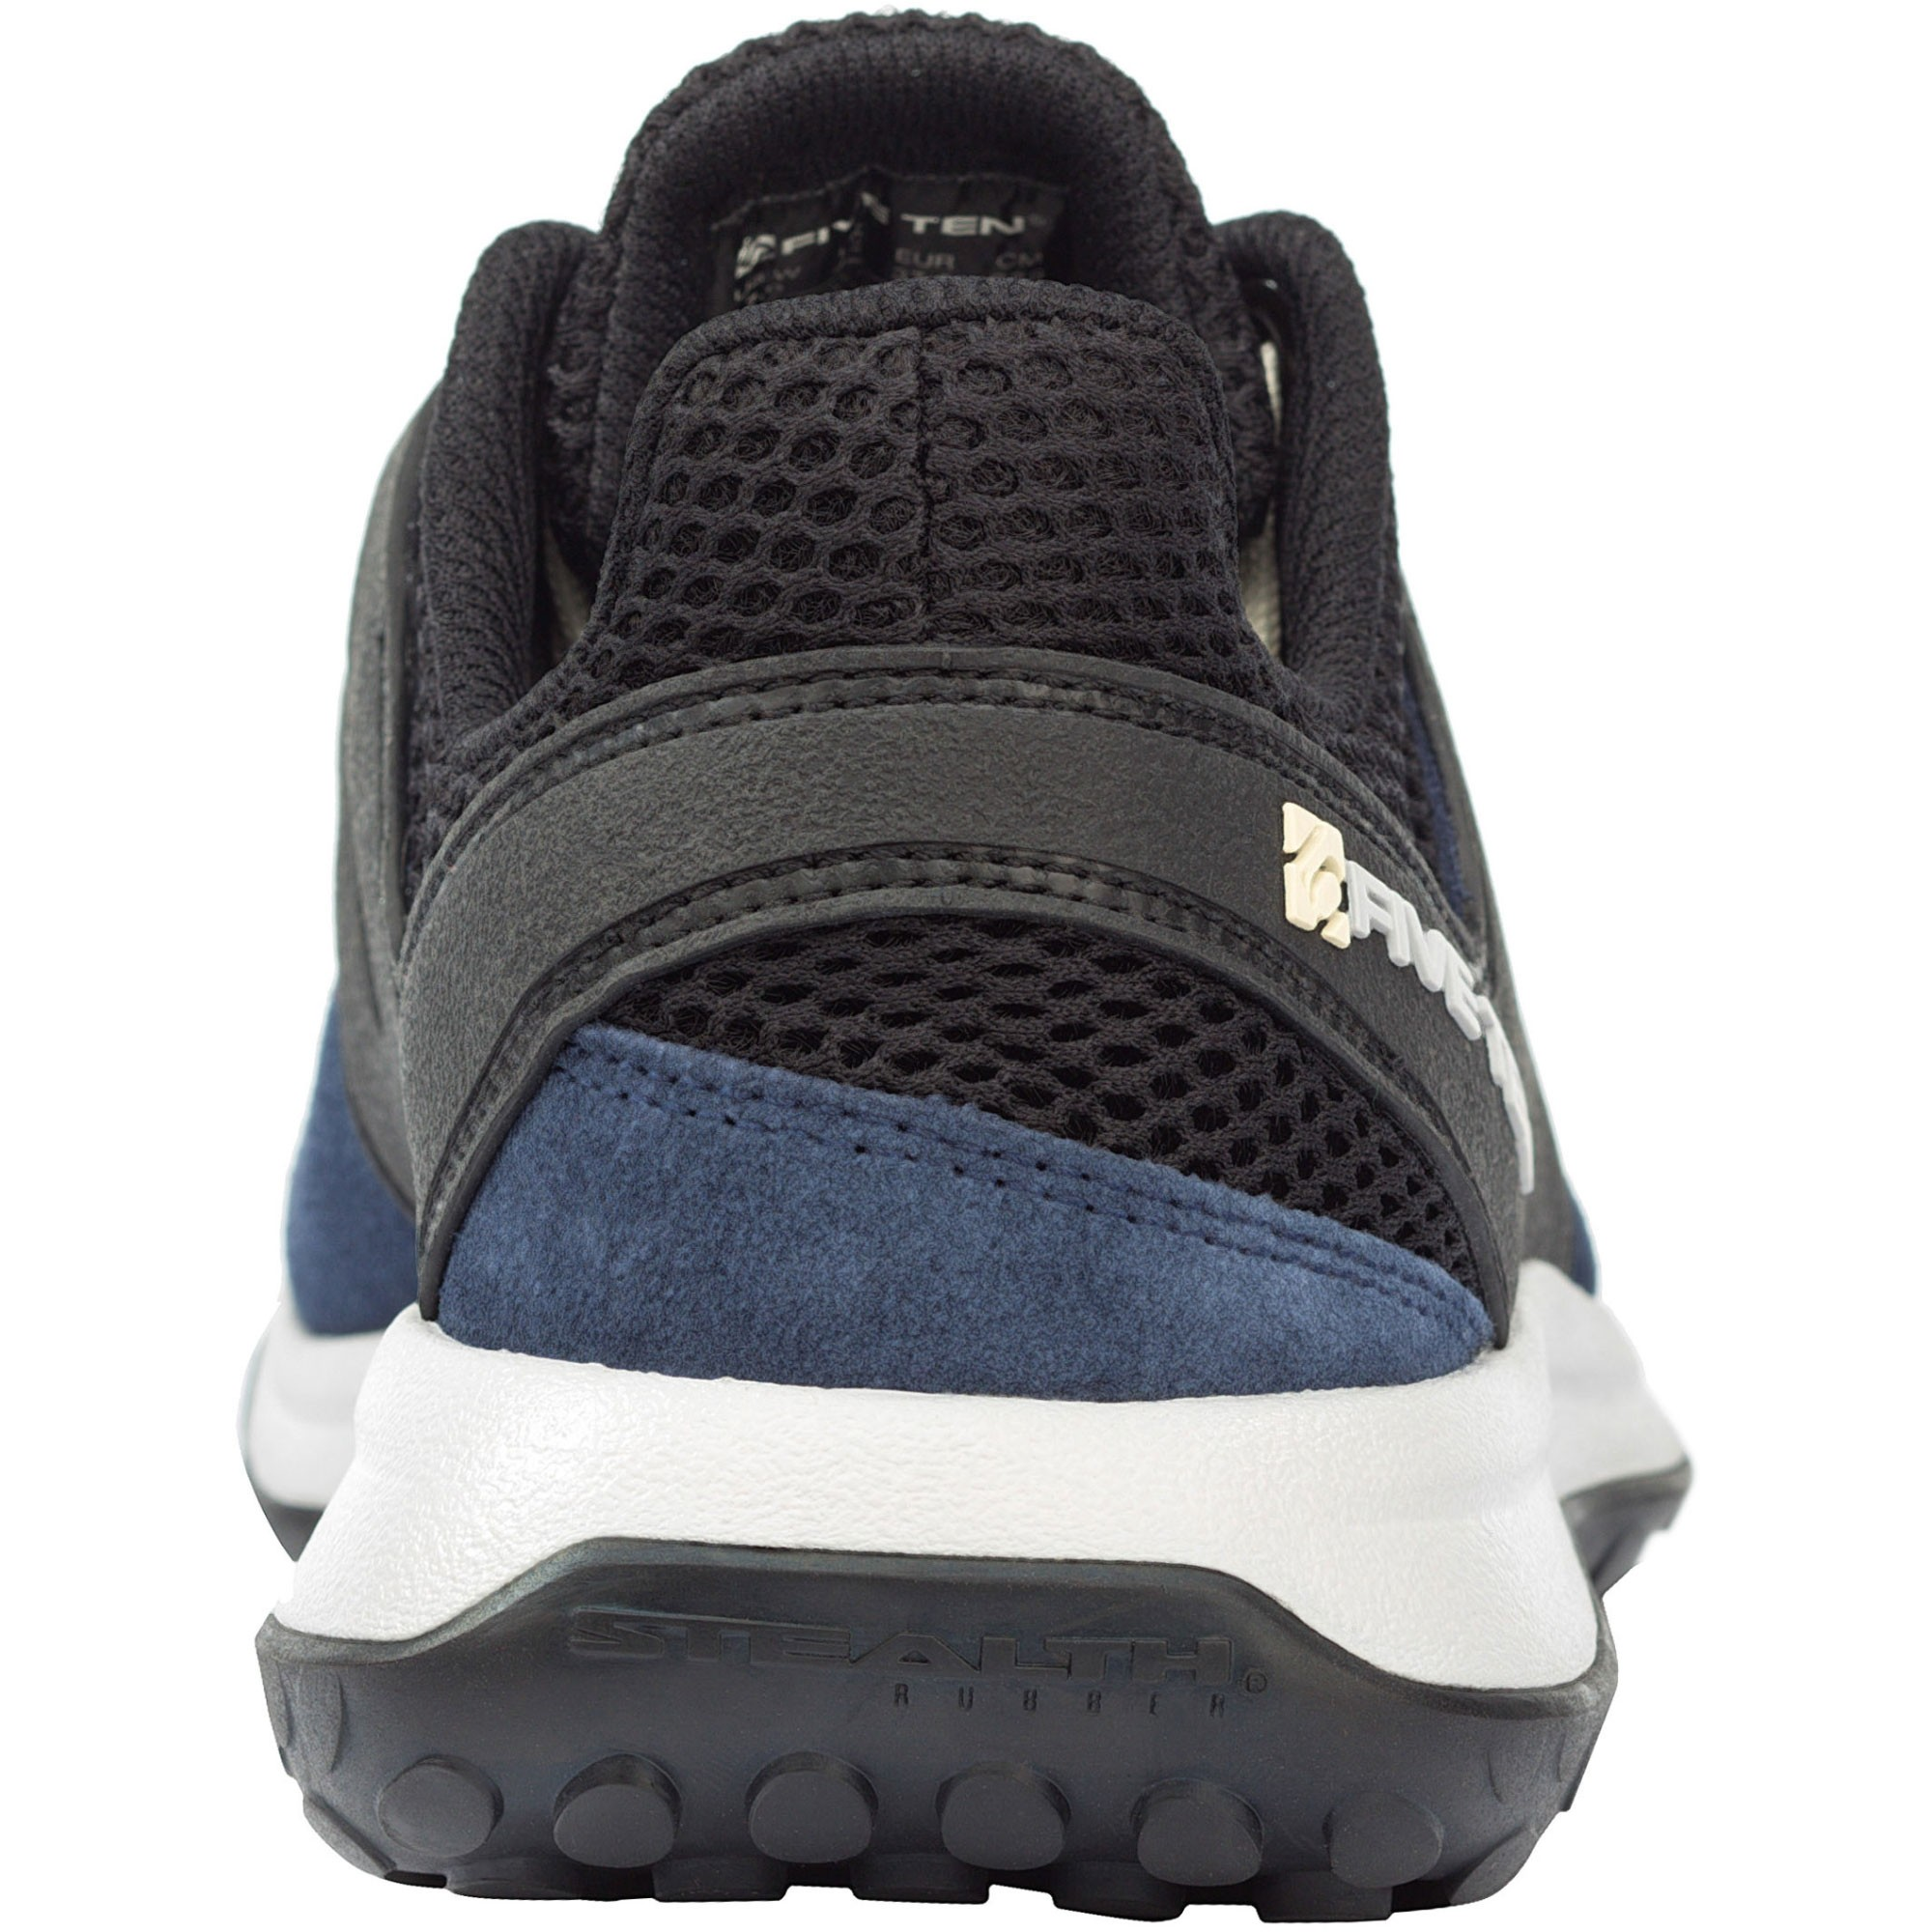 Five.Ten Access Leather Women's Approach Shoes - Collegiate Navy